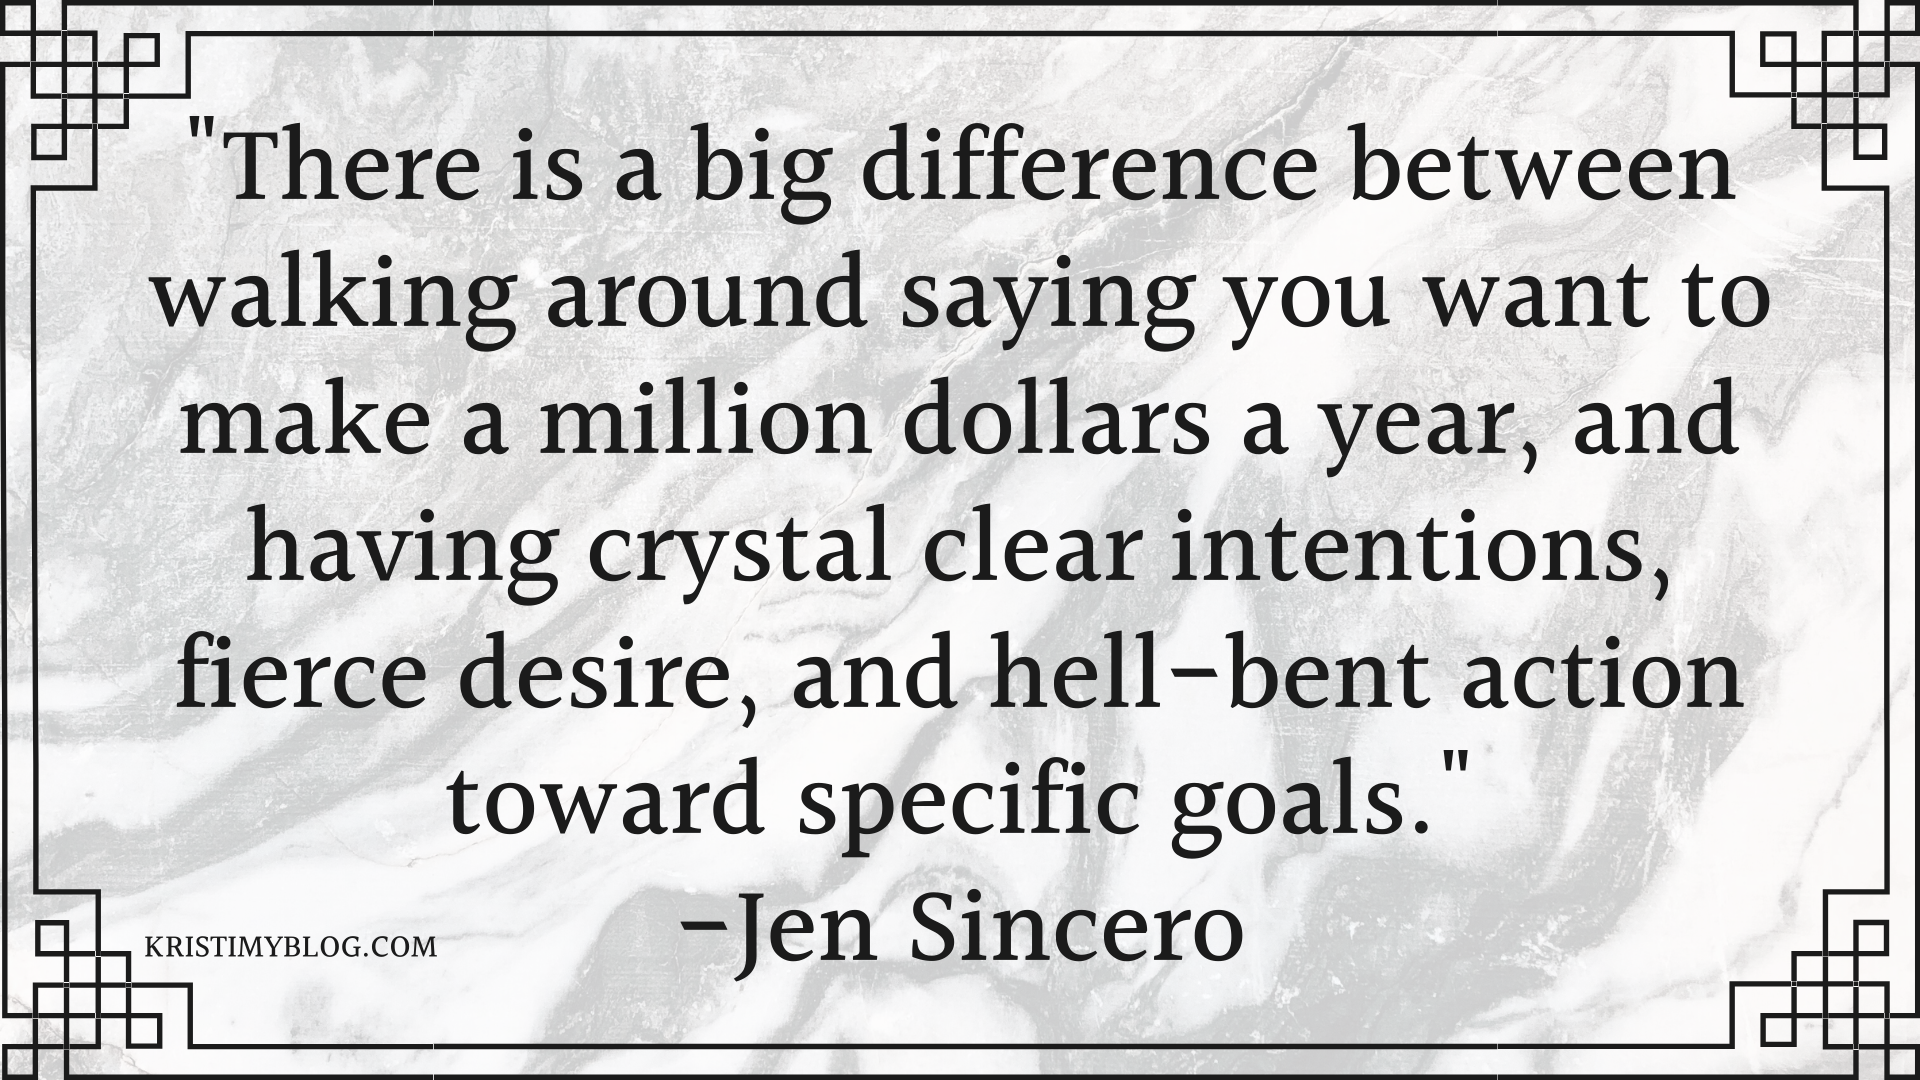 """There is a big difference between walking around saying you want a million dollars a year, and having crystal clear intentions, fierce desire, and hell-bent action toward specific goals."" -Jen Sincero"